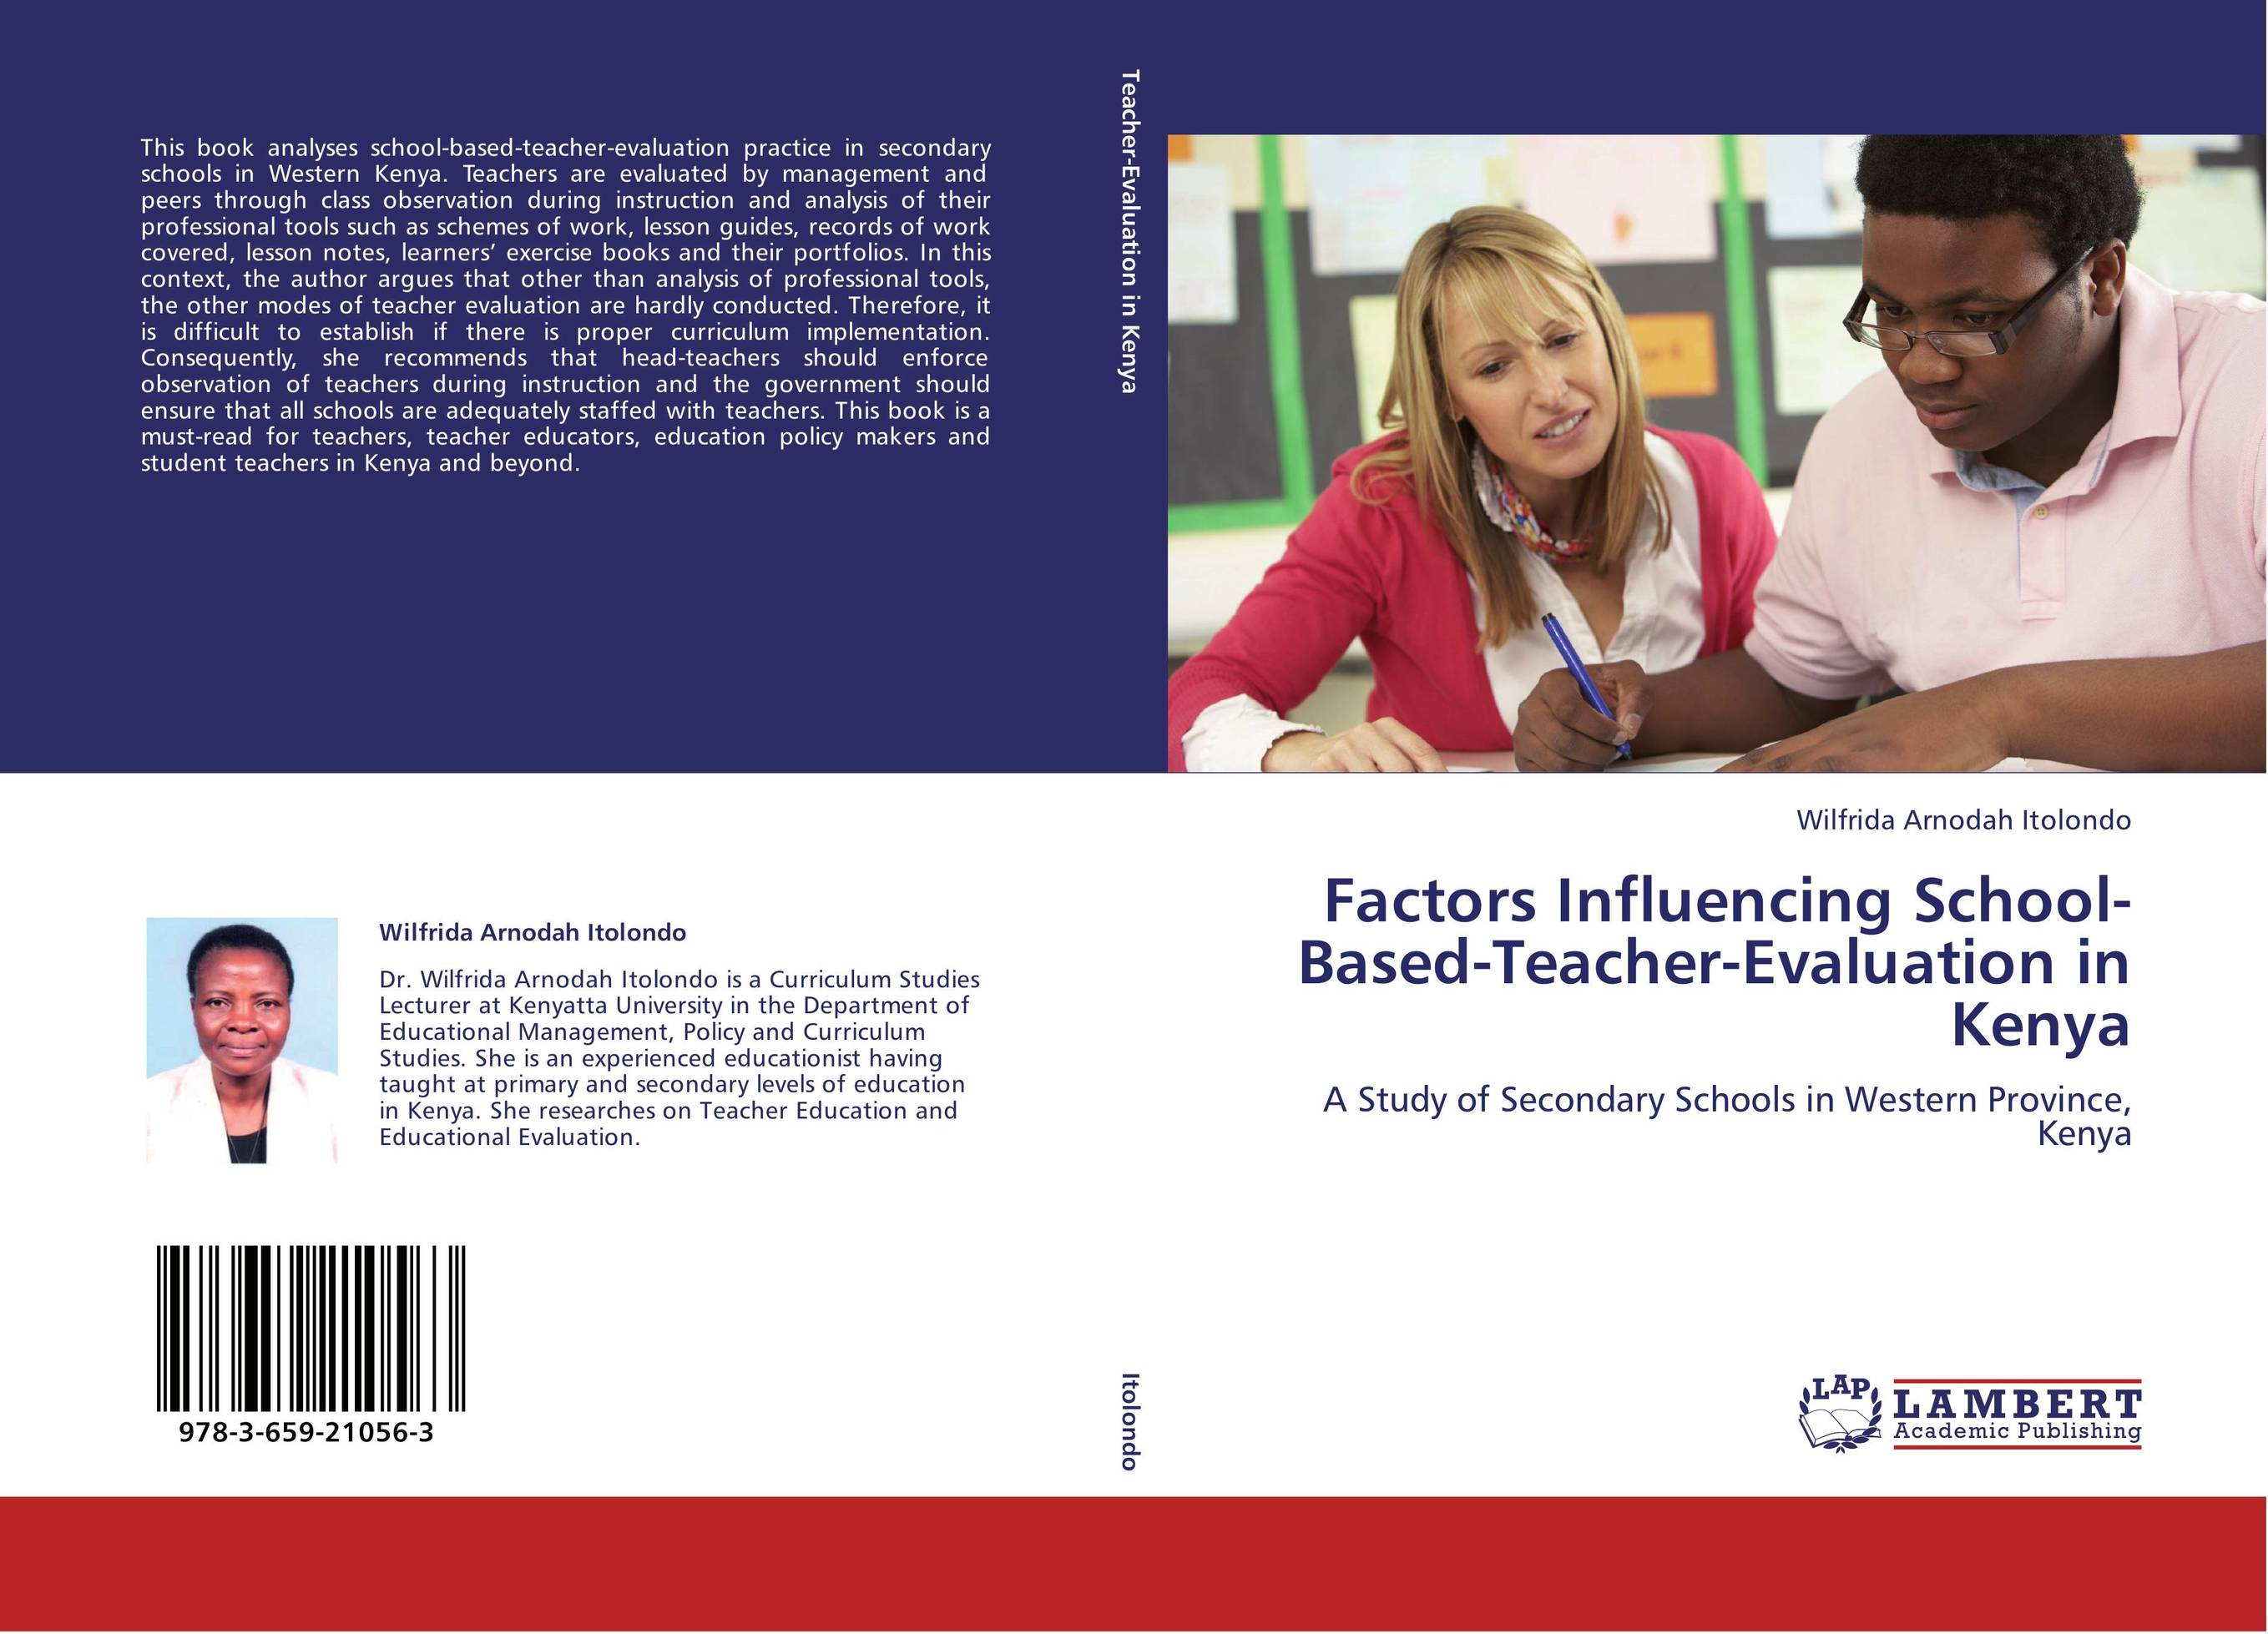 study on school based management School-based management, school based governance, school self management and school site management: different terms with somewhat different meanings, but all referring to a similar and increasingly popular trend, which consists of allowing schools more autonomy in.